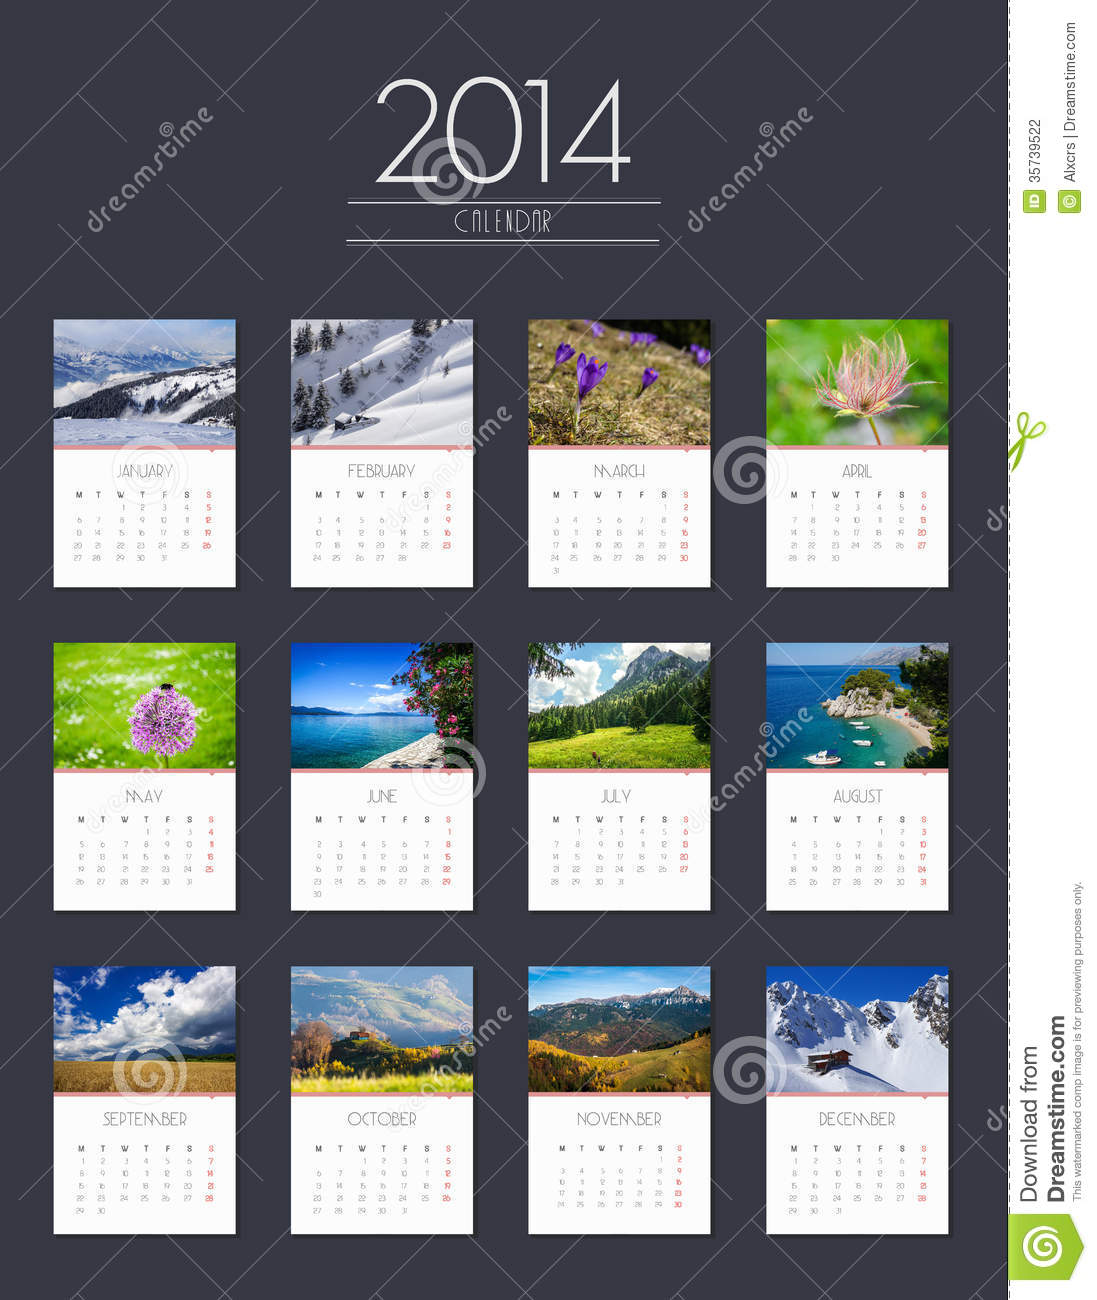 Calendar Design In Photo : Calendar flat design stock photography image